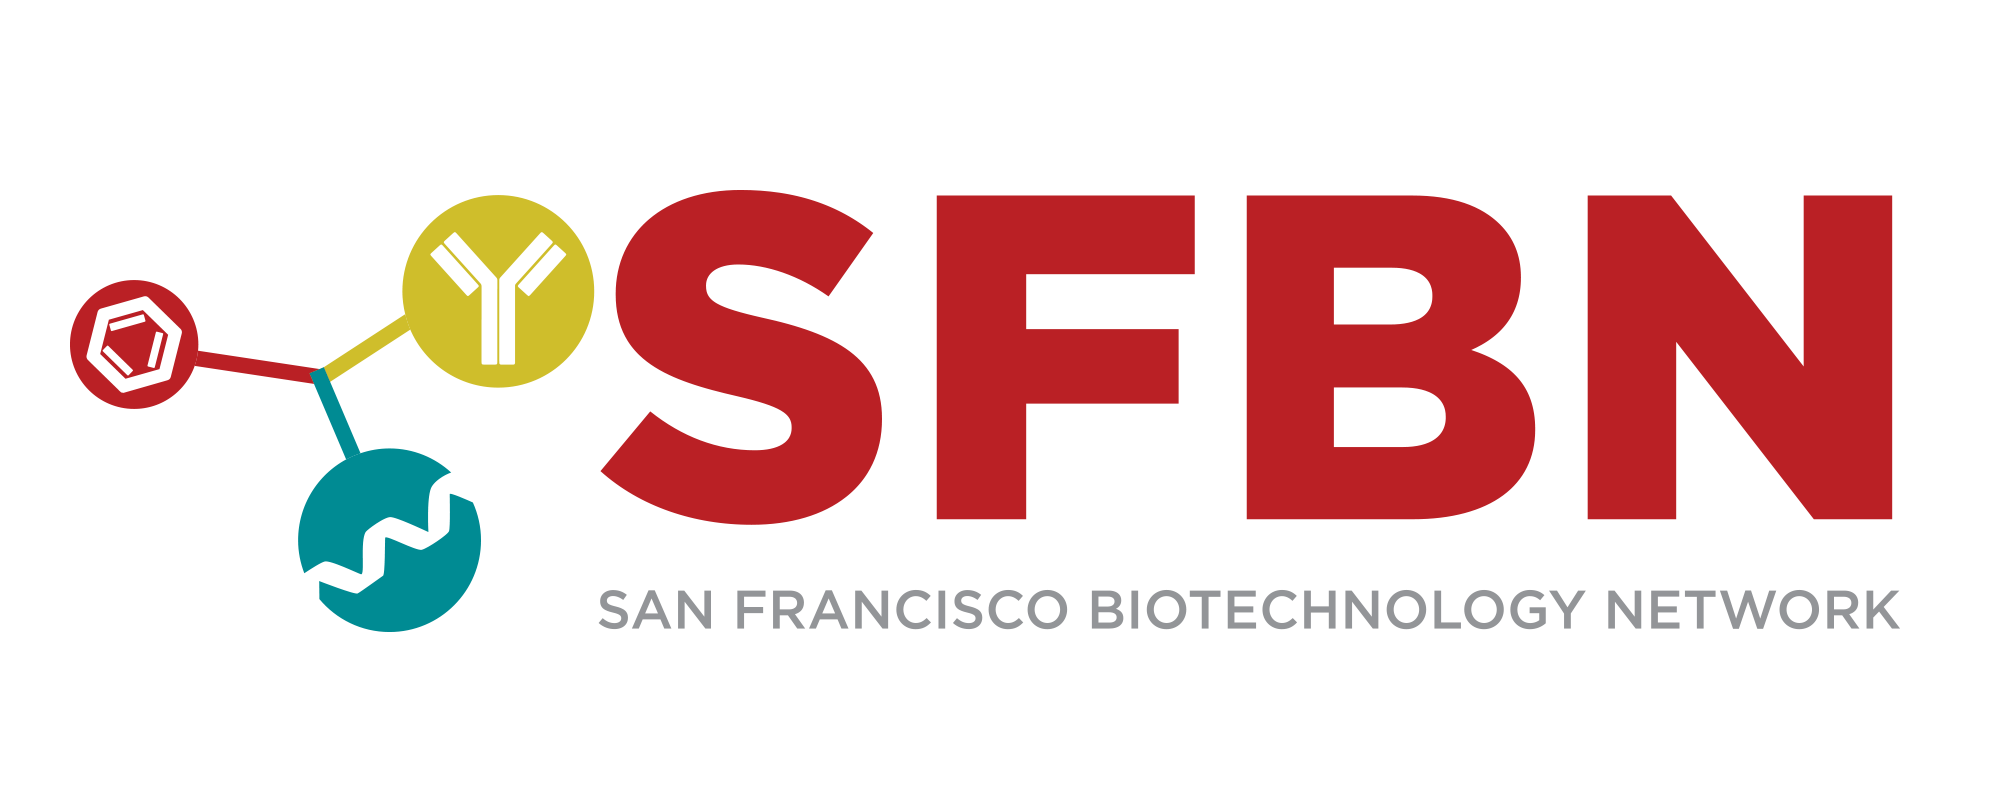 San Francisco Biotechnology Network